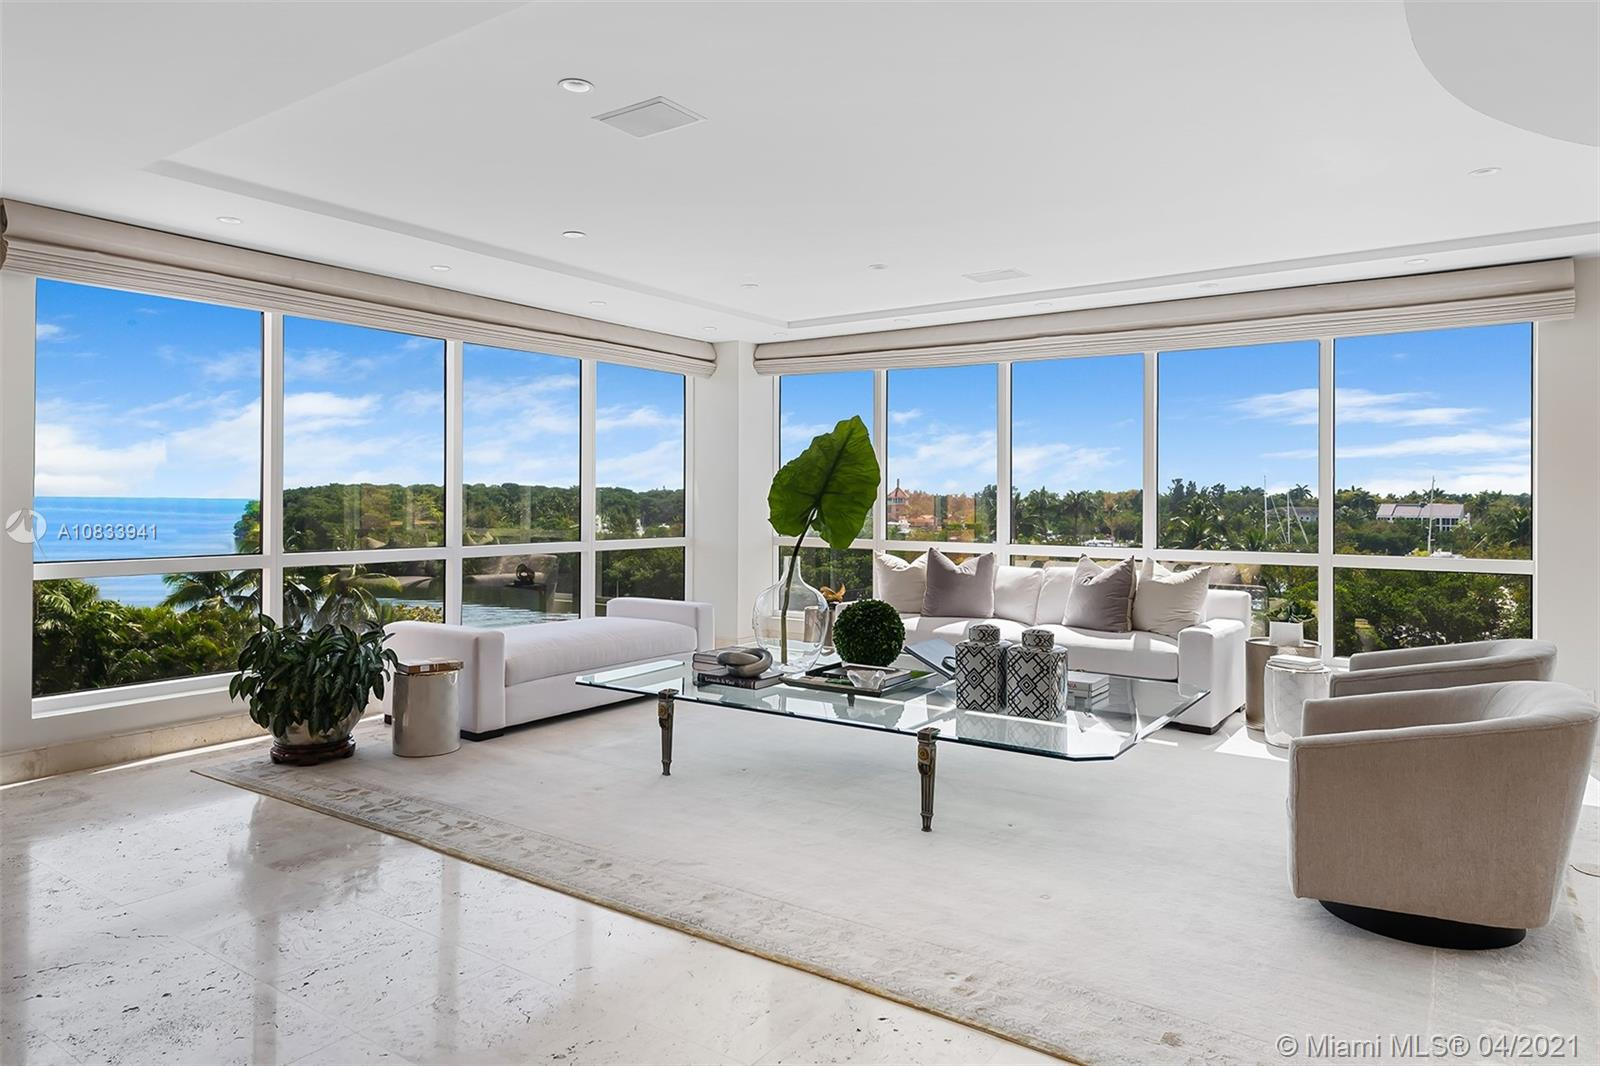 """7,600sf of pure elegance awaits the new owner of this unique, combined """"A"""" line unit in the prestigious and well located Gables Club complex. With direct views of the Miami skyline and Biscayne Bay, this unit offers a rare opportunity to really """"have it all"""" at one's fingertips: full service concierge, on-site bar/restaurant, gym/spa/beauty salon, tennis courts, putting green, heated pool, marina, 24hr security and valet parking.  This is convenient and worry free living at its best. Originally configured as a 6 bedroom unit, it currently has 4 bedrooms plus a gym/playroom and a library/office/den. Encompassing two floors with an elevator as well as a stunning interior connecting staircase, this waterfront luxury home in the sky represents the epitome of luxurious, care free living."""